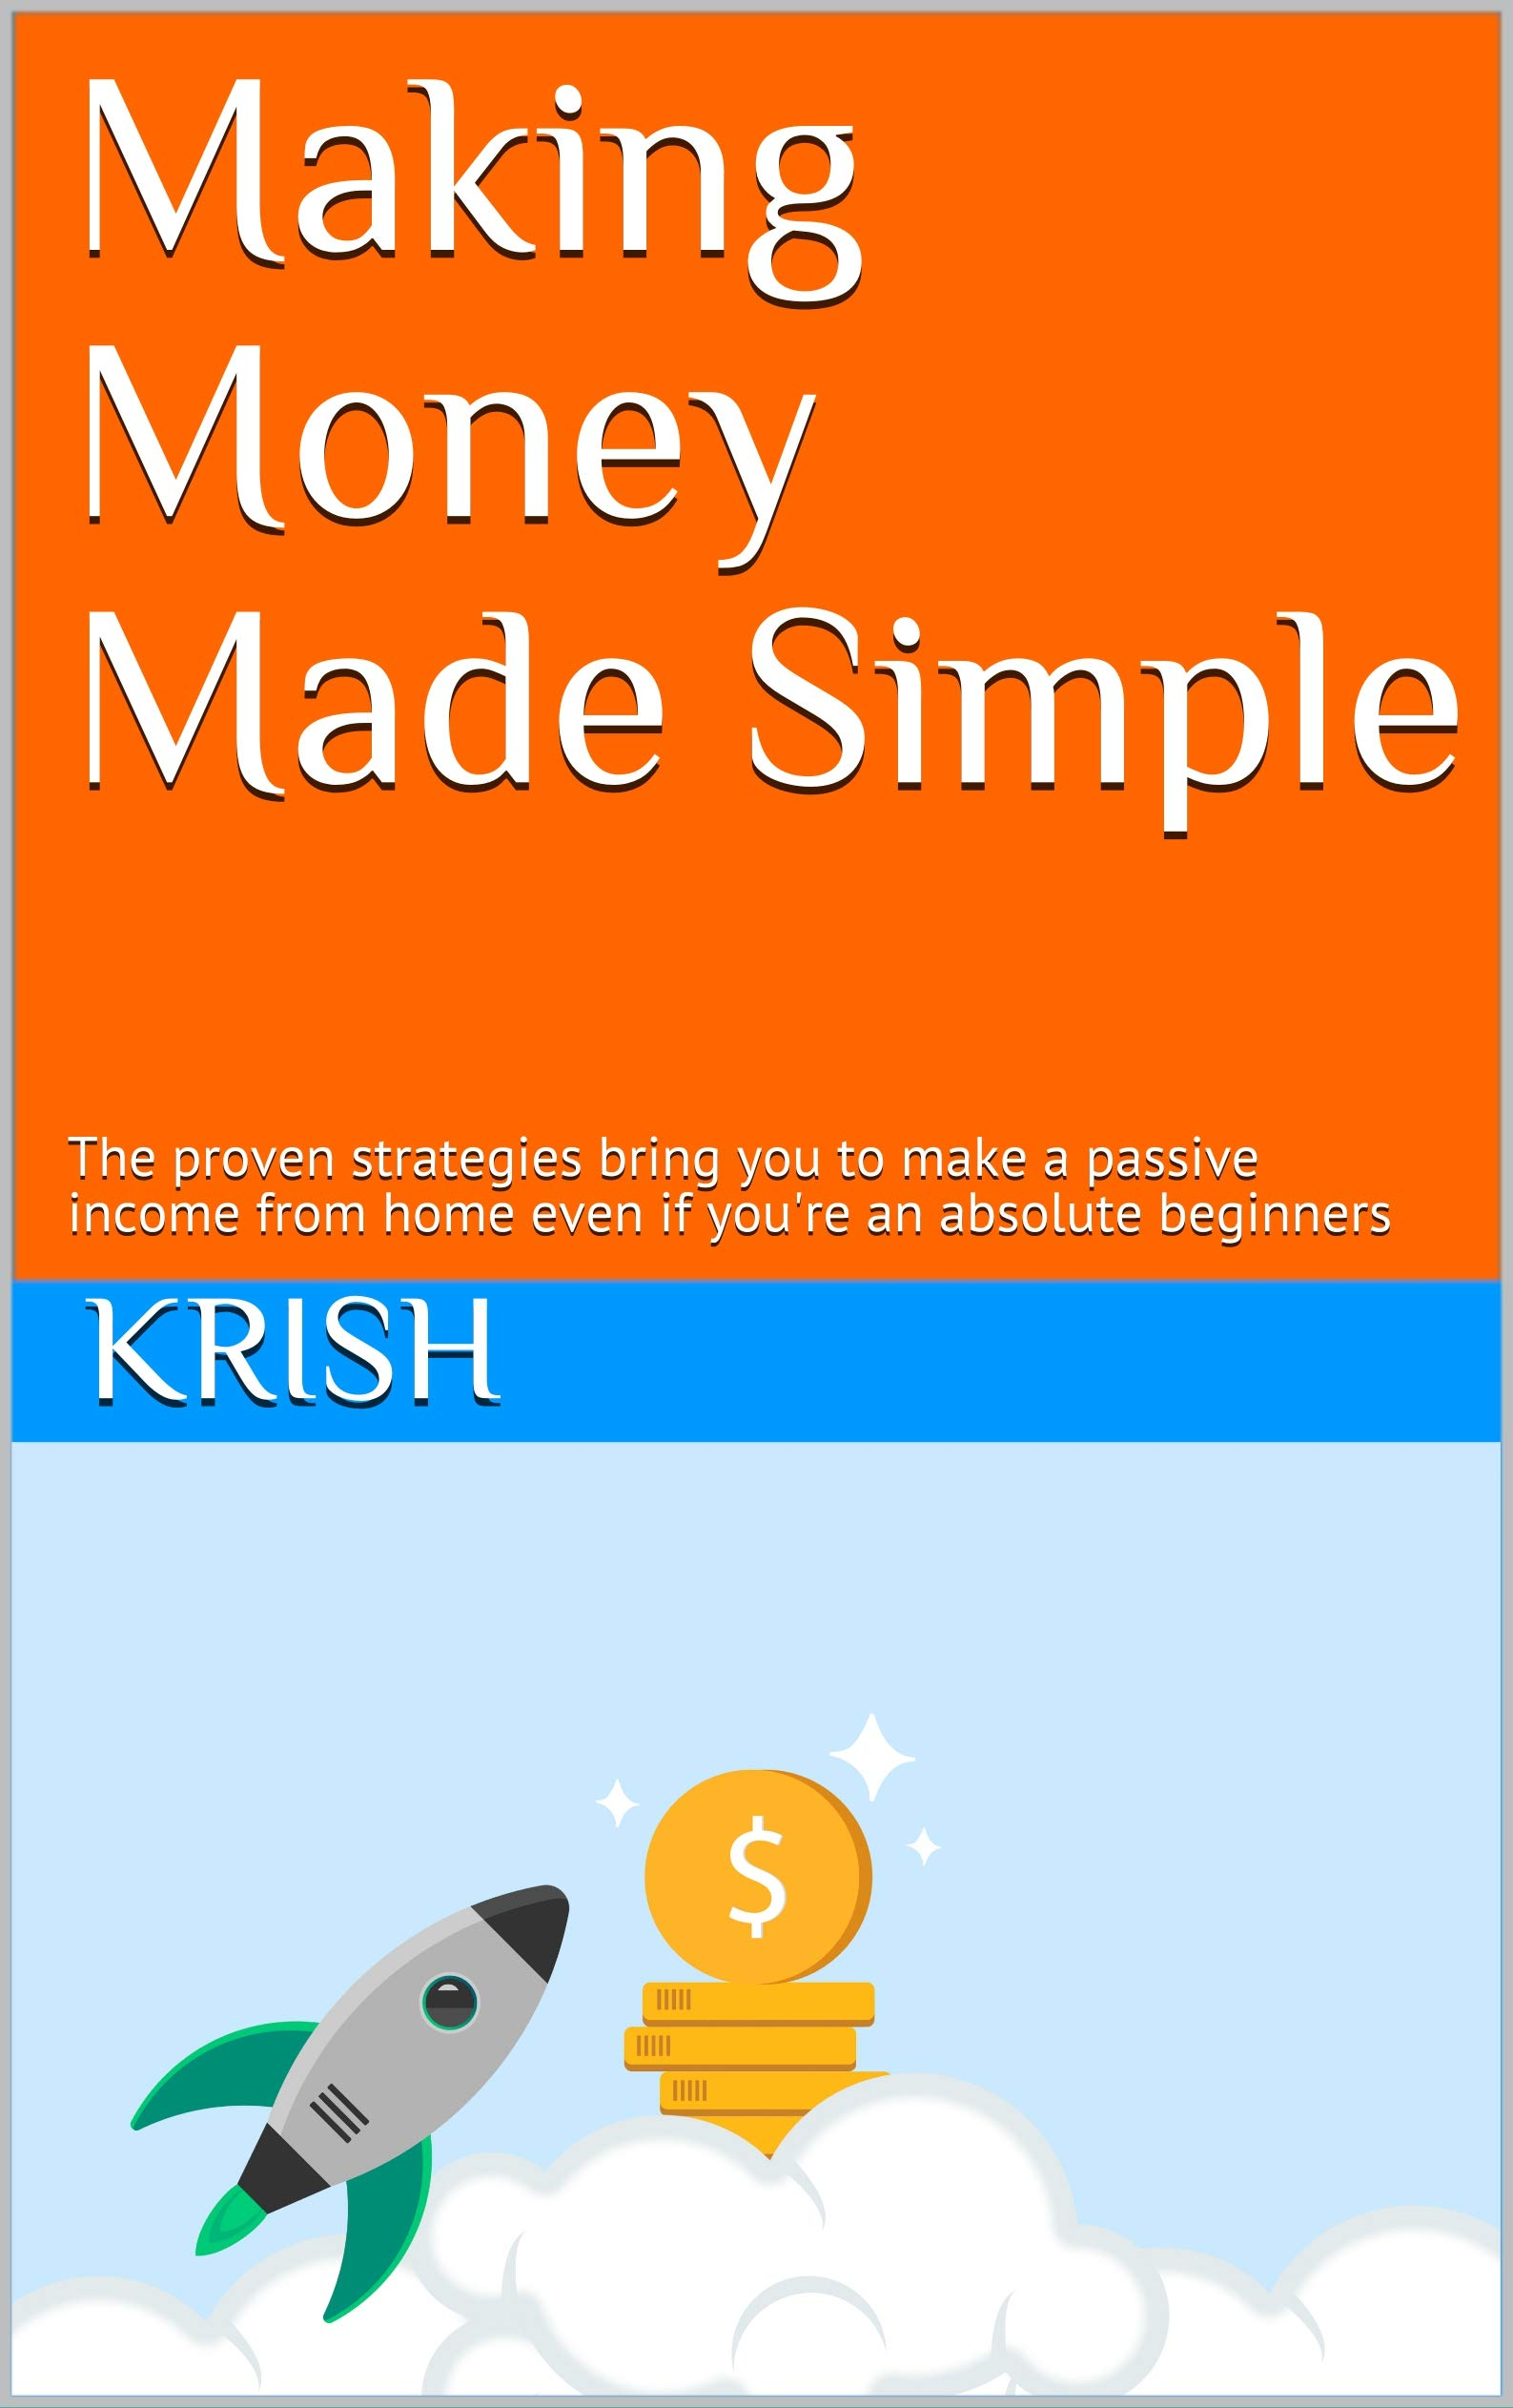 Making Money Made Simple : The proven strategies bring you to make a passive income from home even if you're an absolute beginners